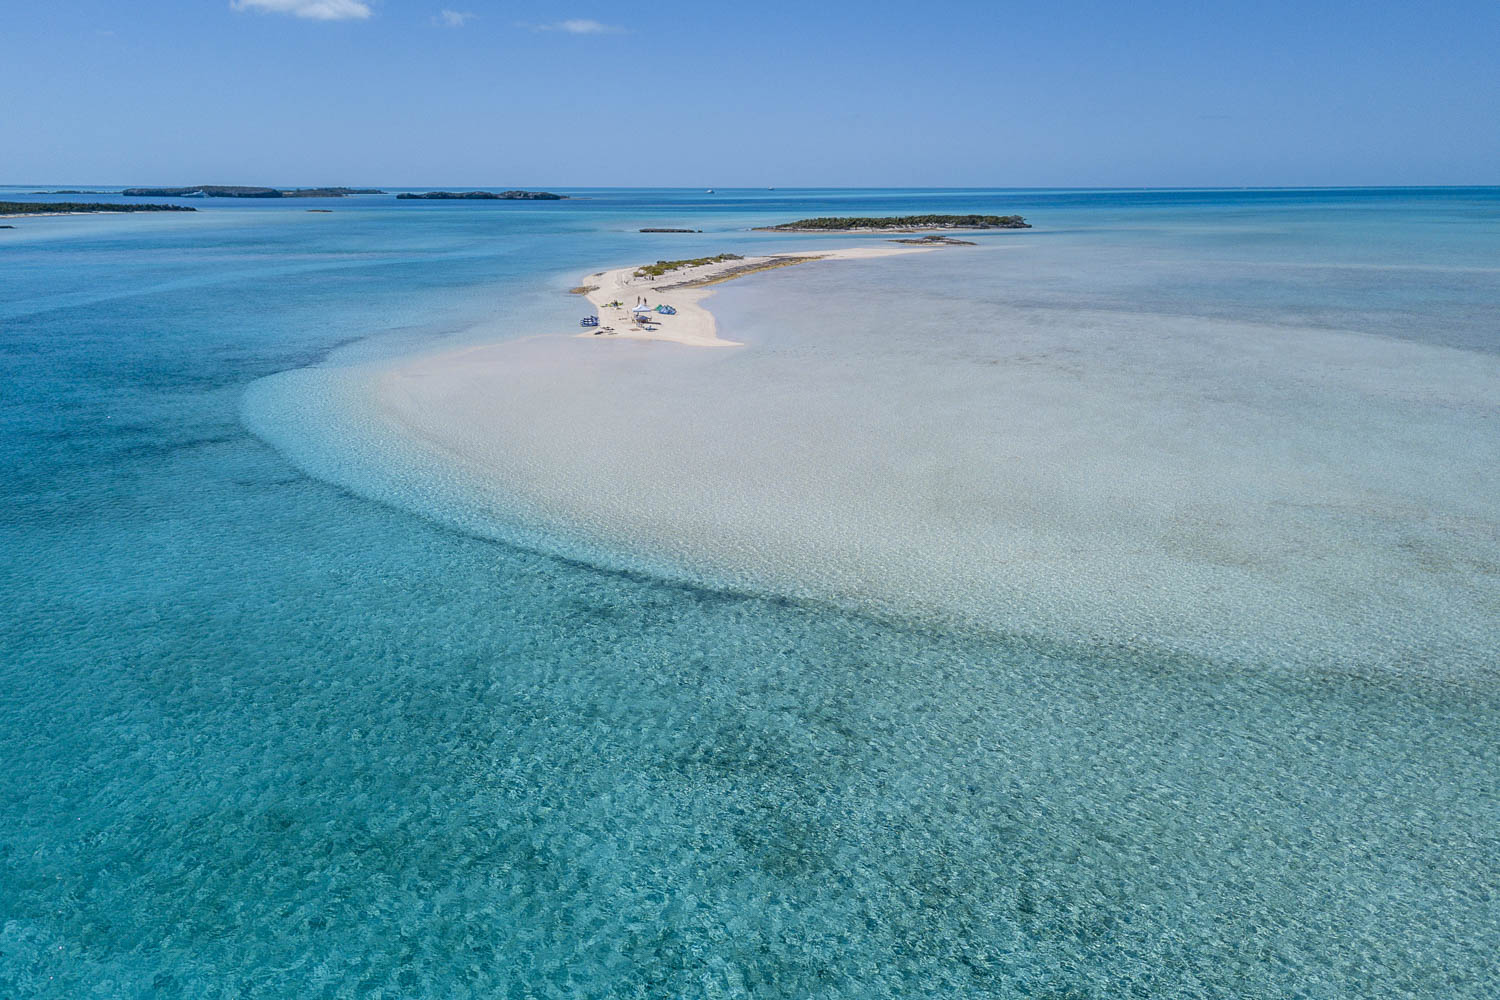 Find hidden sand bars that show up at low tide. Bahamas day trip by plane leave every day from Fort Lauderdale and Nassau. Captured on day trips to Bahamas.